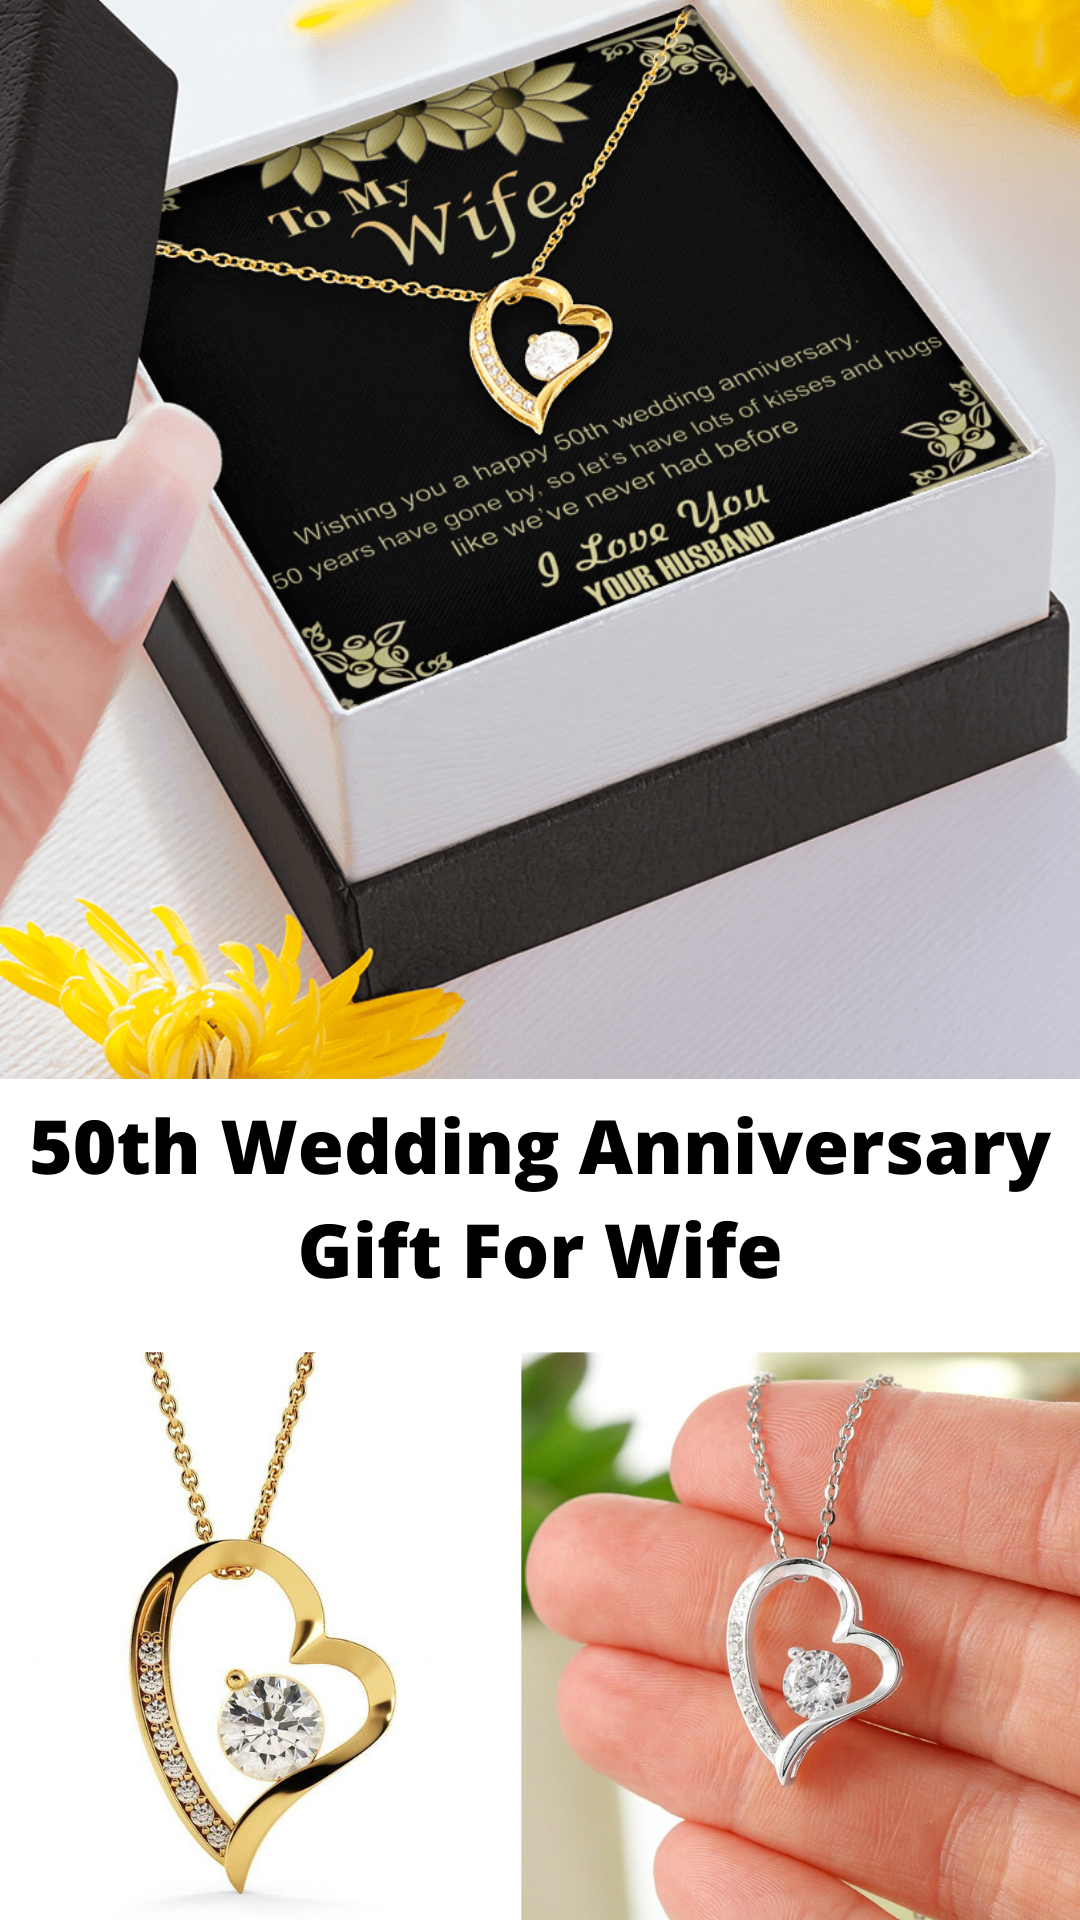 50th Golden Wedding Anniversary Pendant Necklace Gift For Wife Her Gold Present Jewelry Ideas In 2020 50 Wedding Anniversary Gifts 50 Golden Wedding Anniversary Anniversary Jewelry Gifts